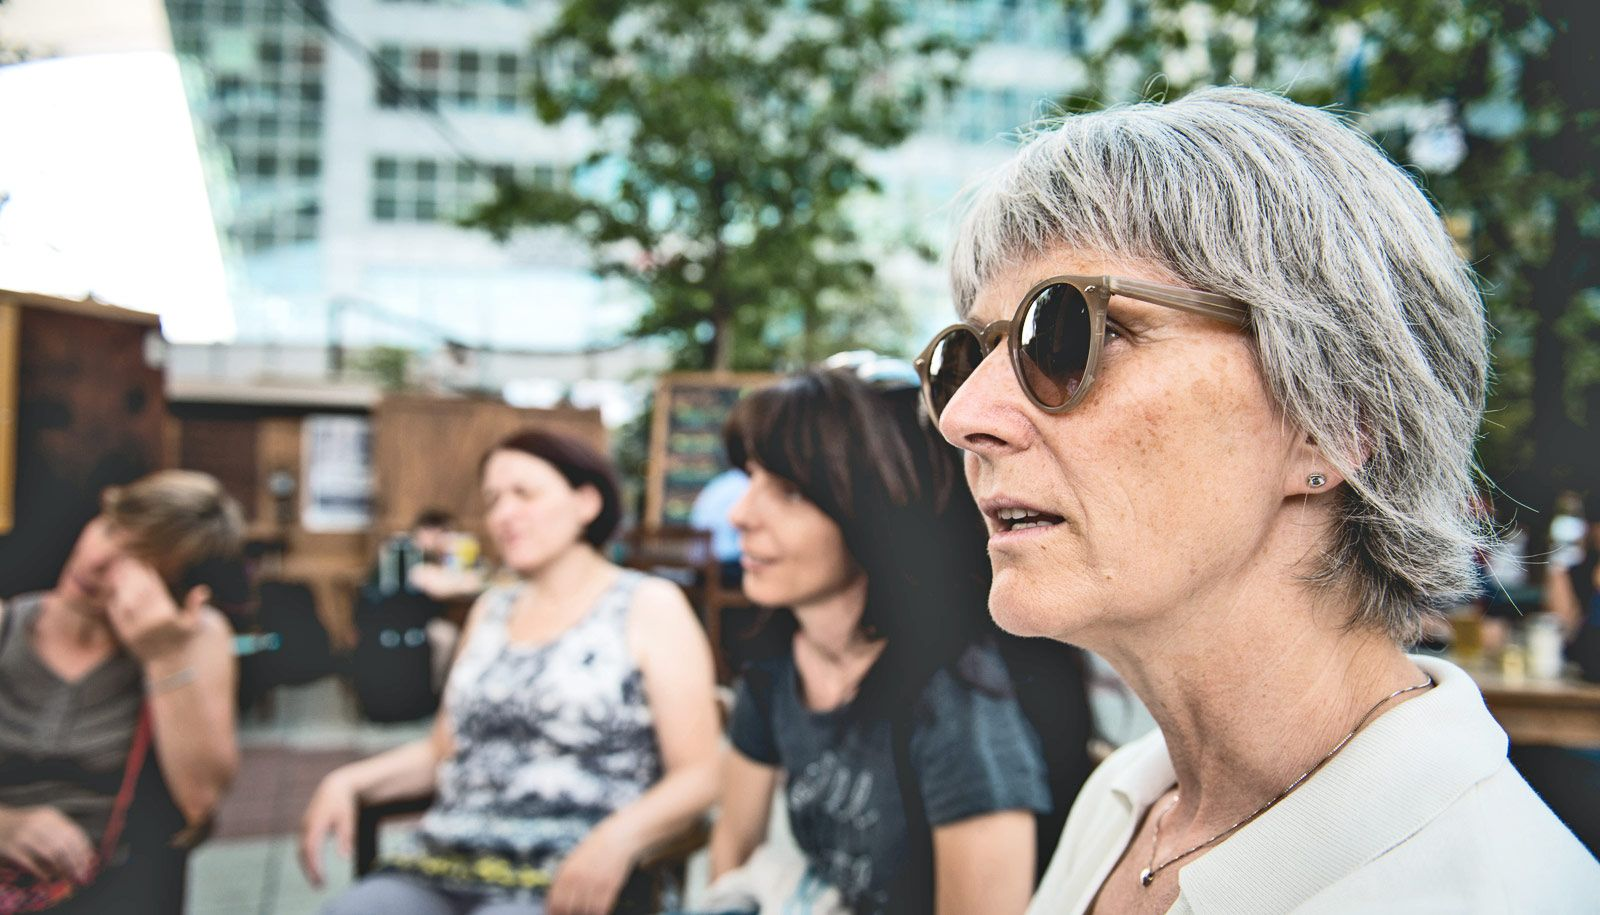 older lesbian and bi women face more chronic health trouble than